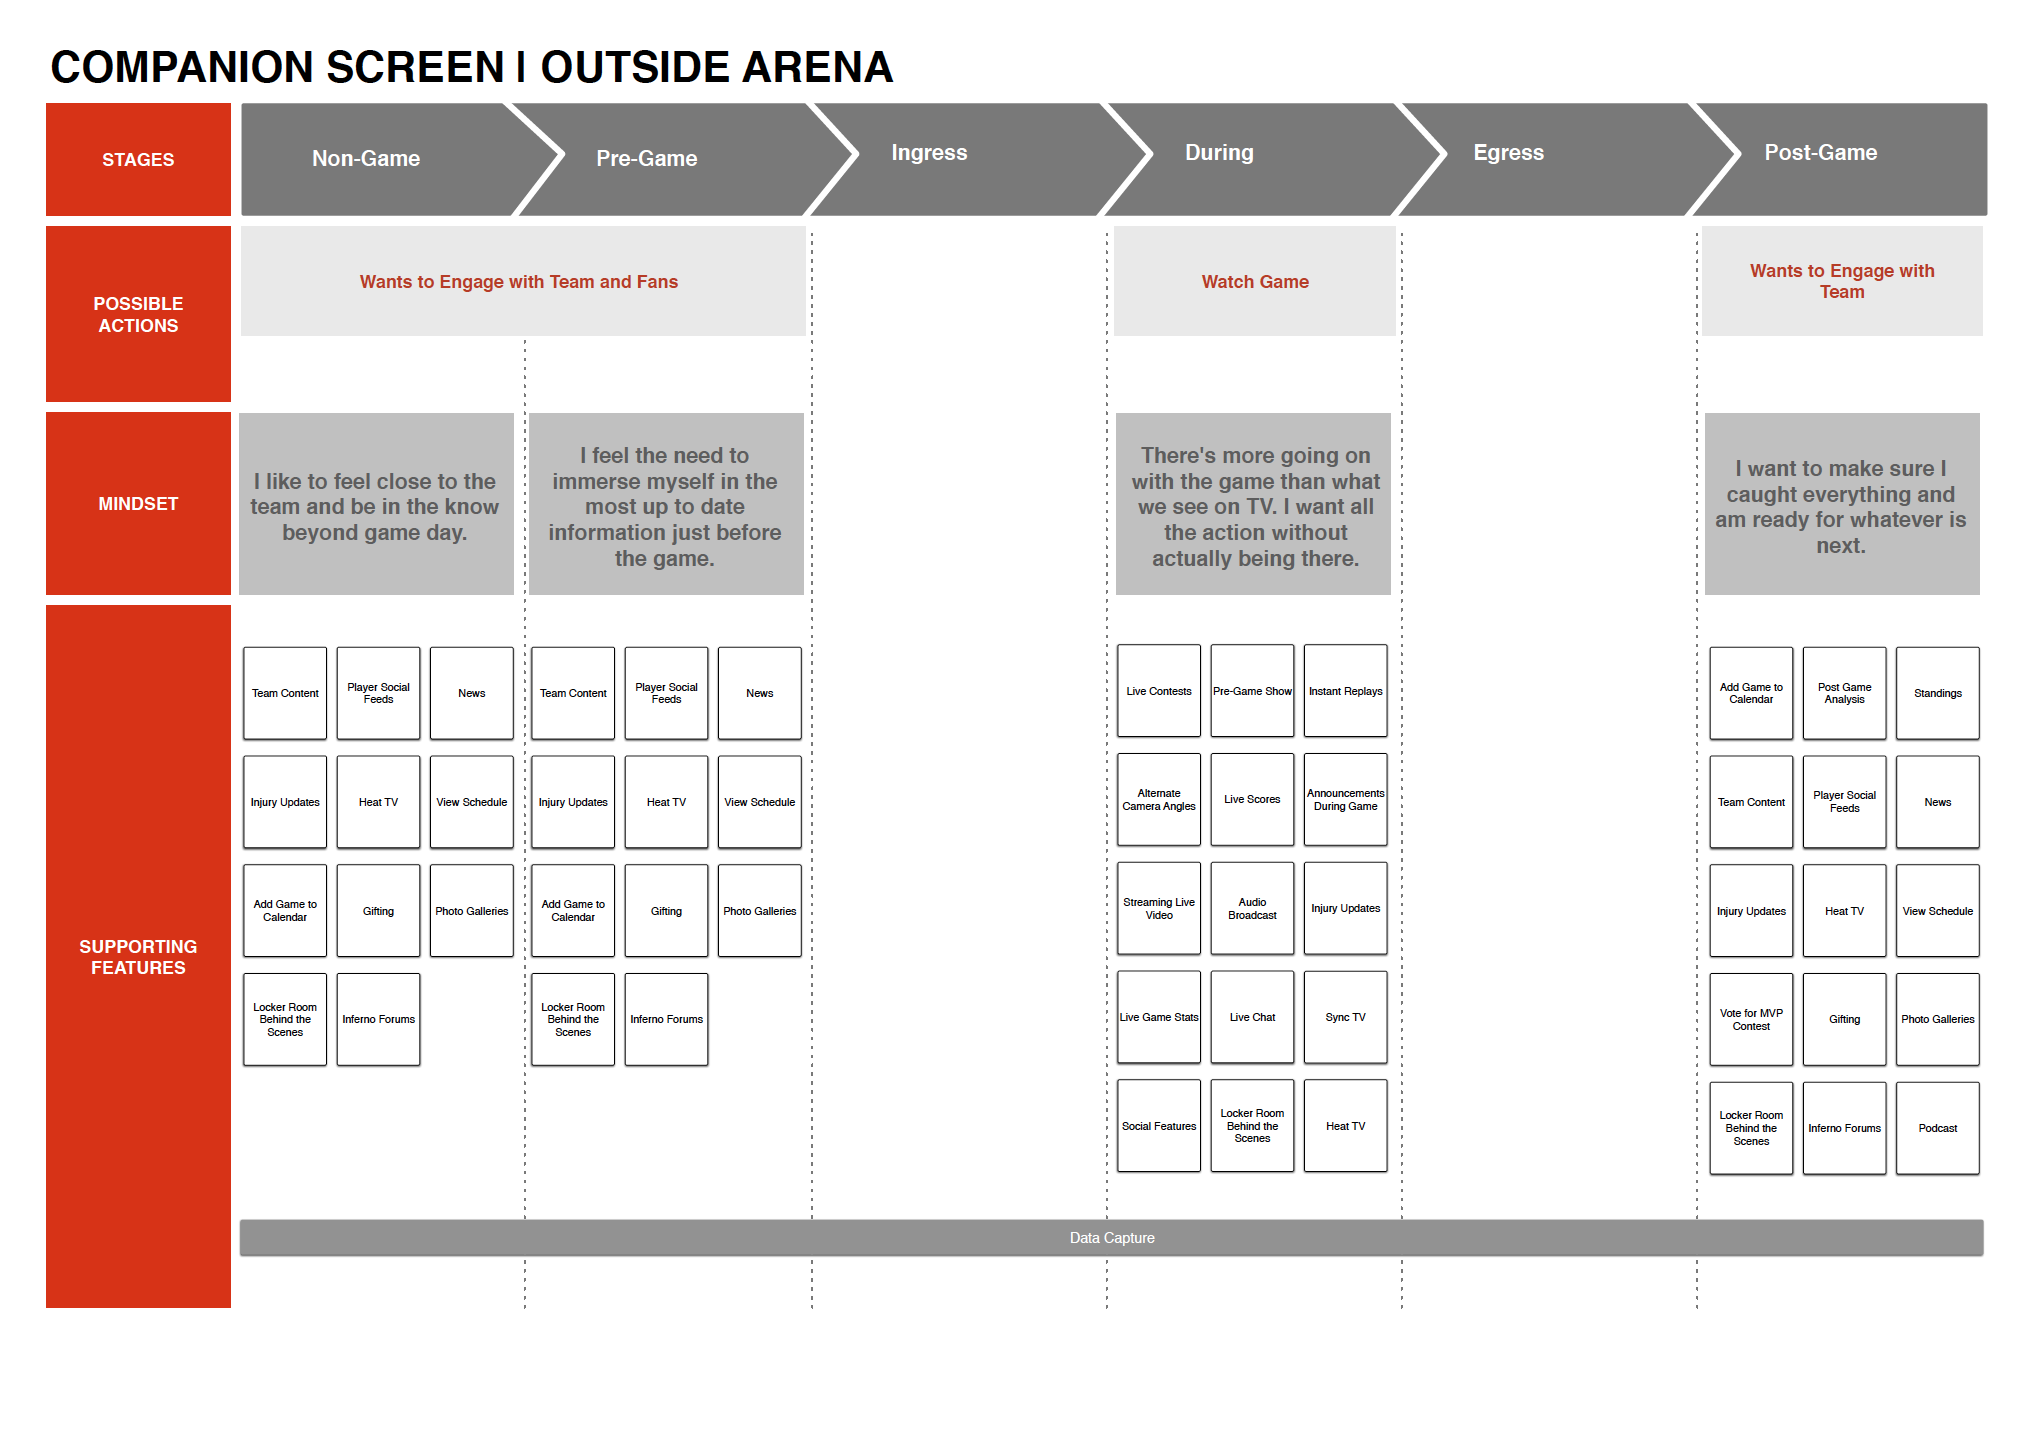 Miami HEAT User Journey - Outside of the Arena